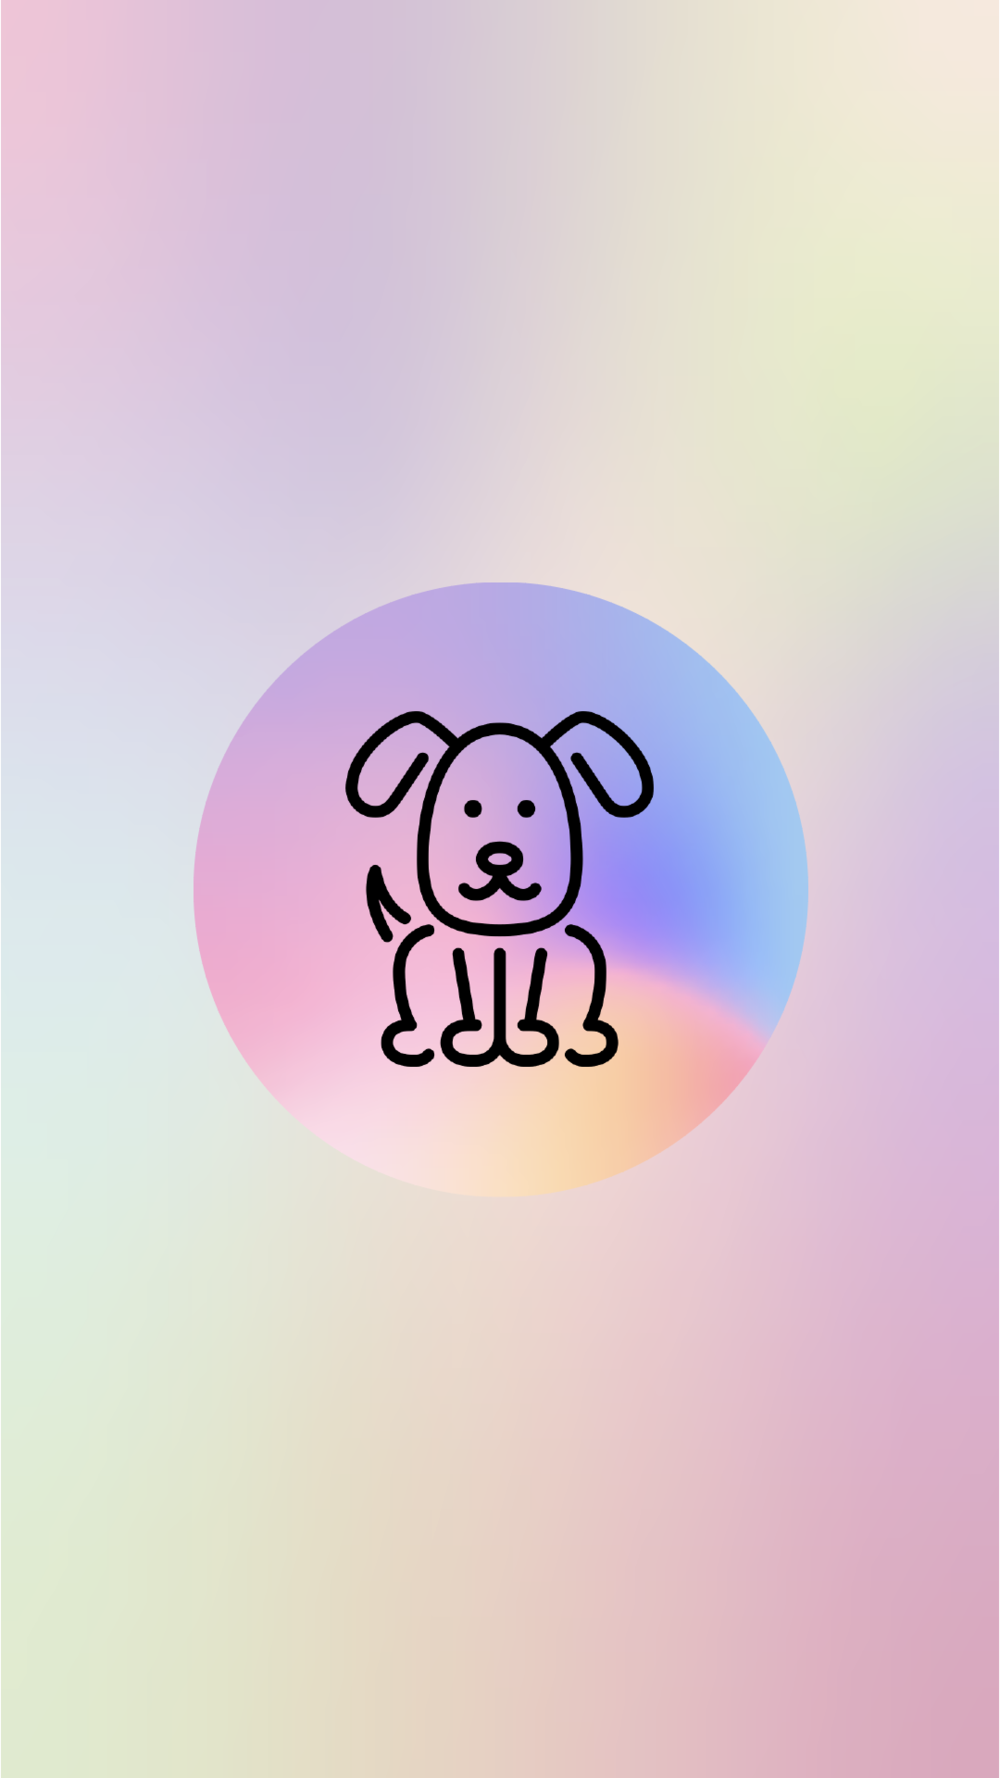 holographic dog.png